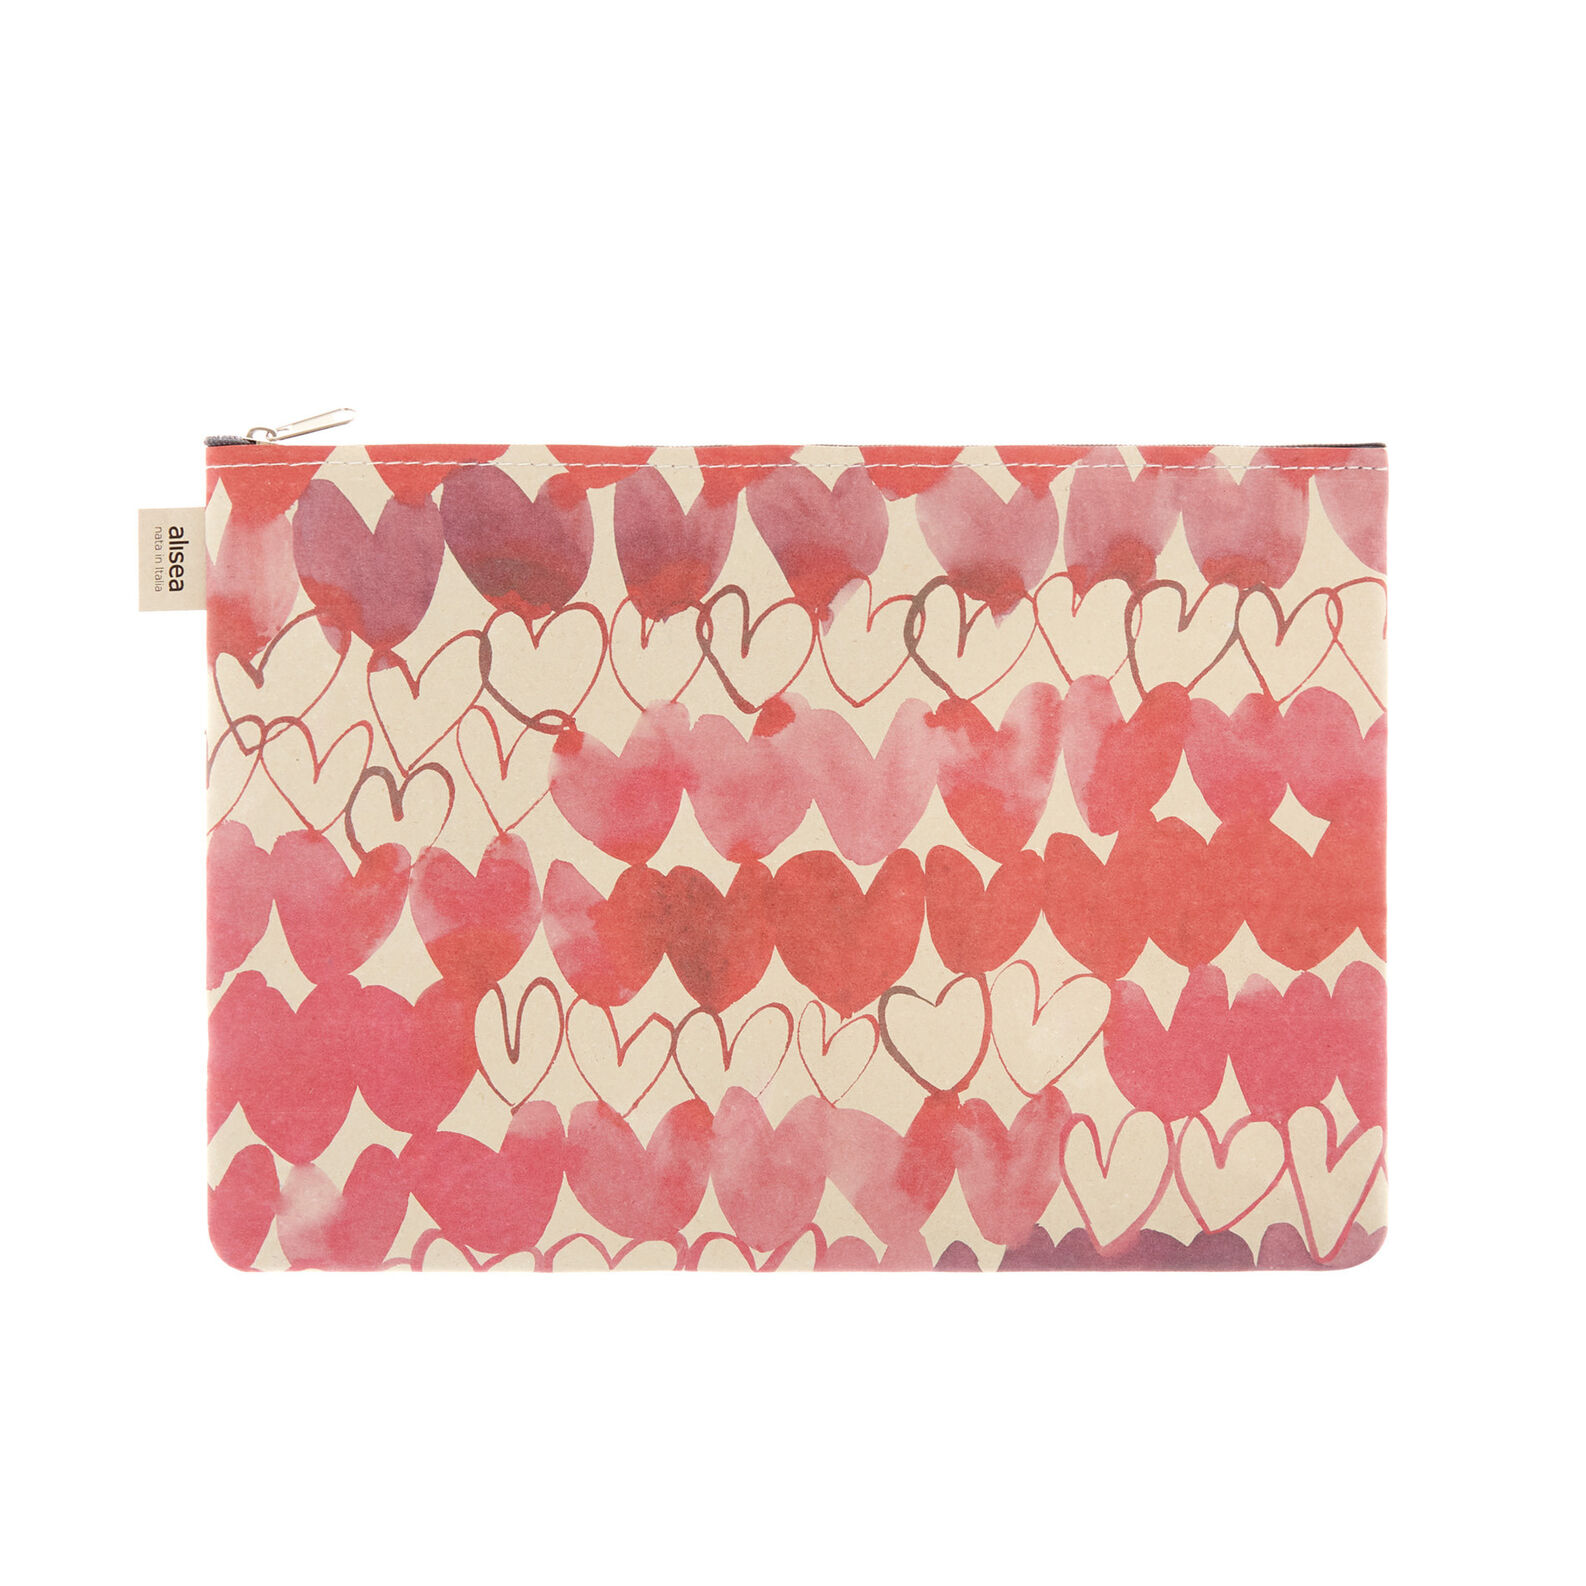 Sandra Jacobs print bonded leather pouch